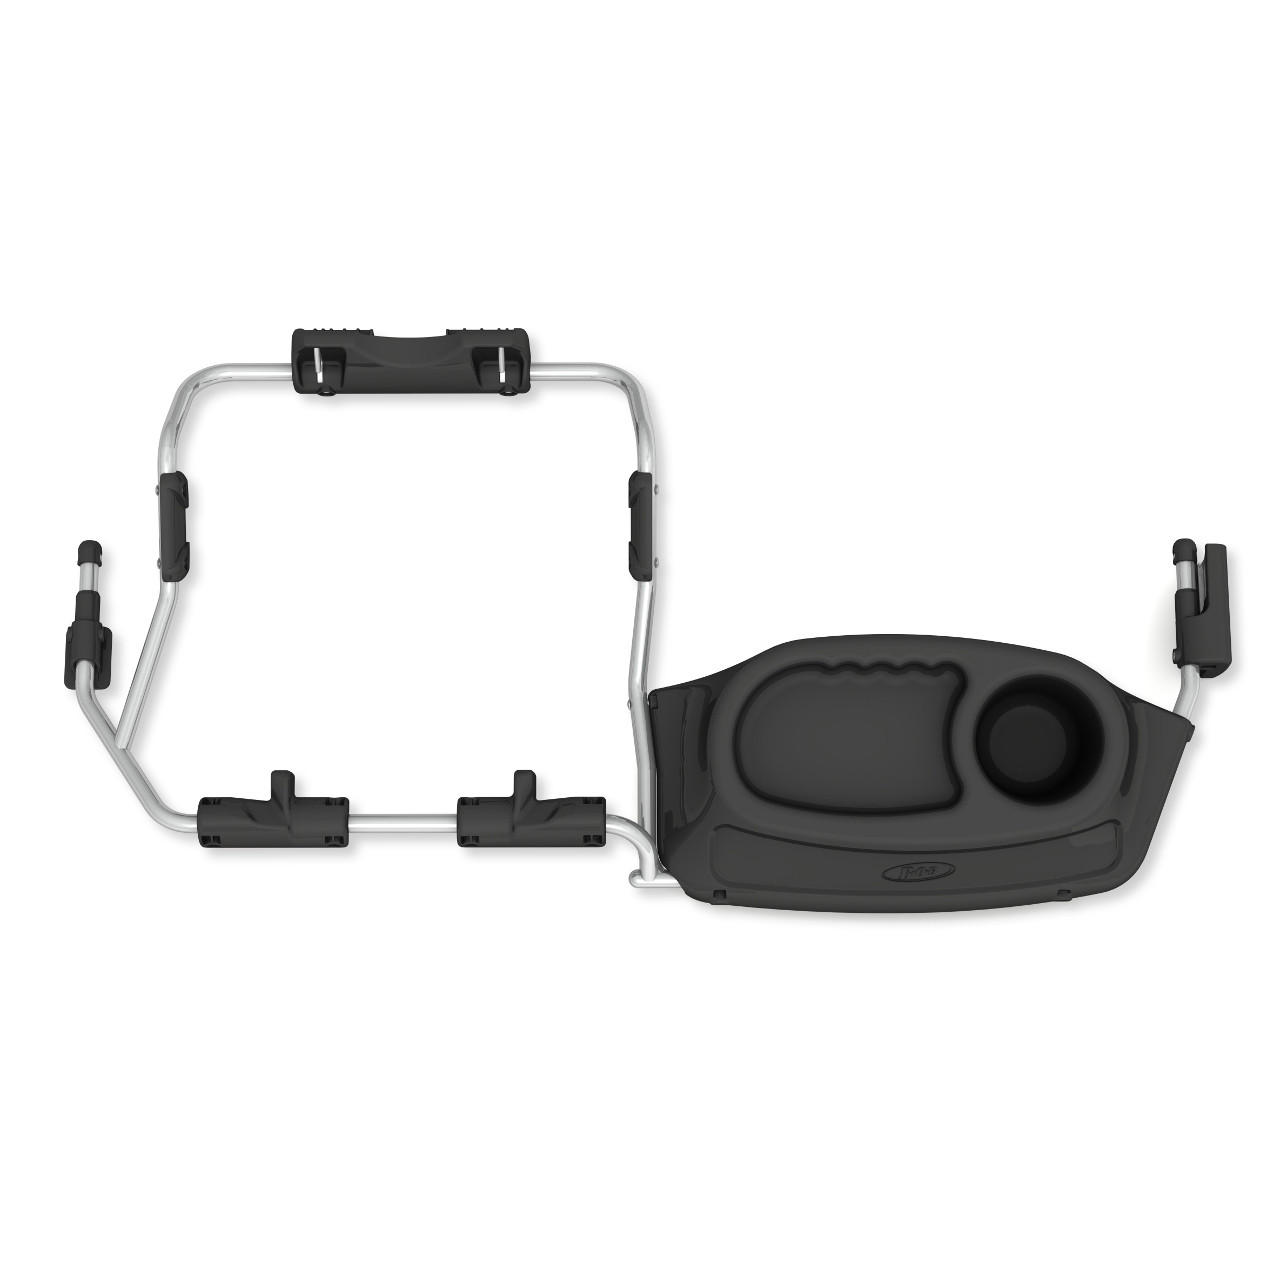 BOB Infant Car Seat Adapter Duallie/Graco S02984500 - Prolithic Sports